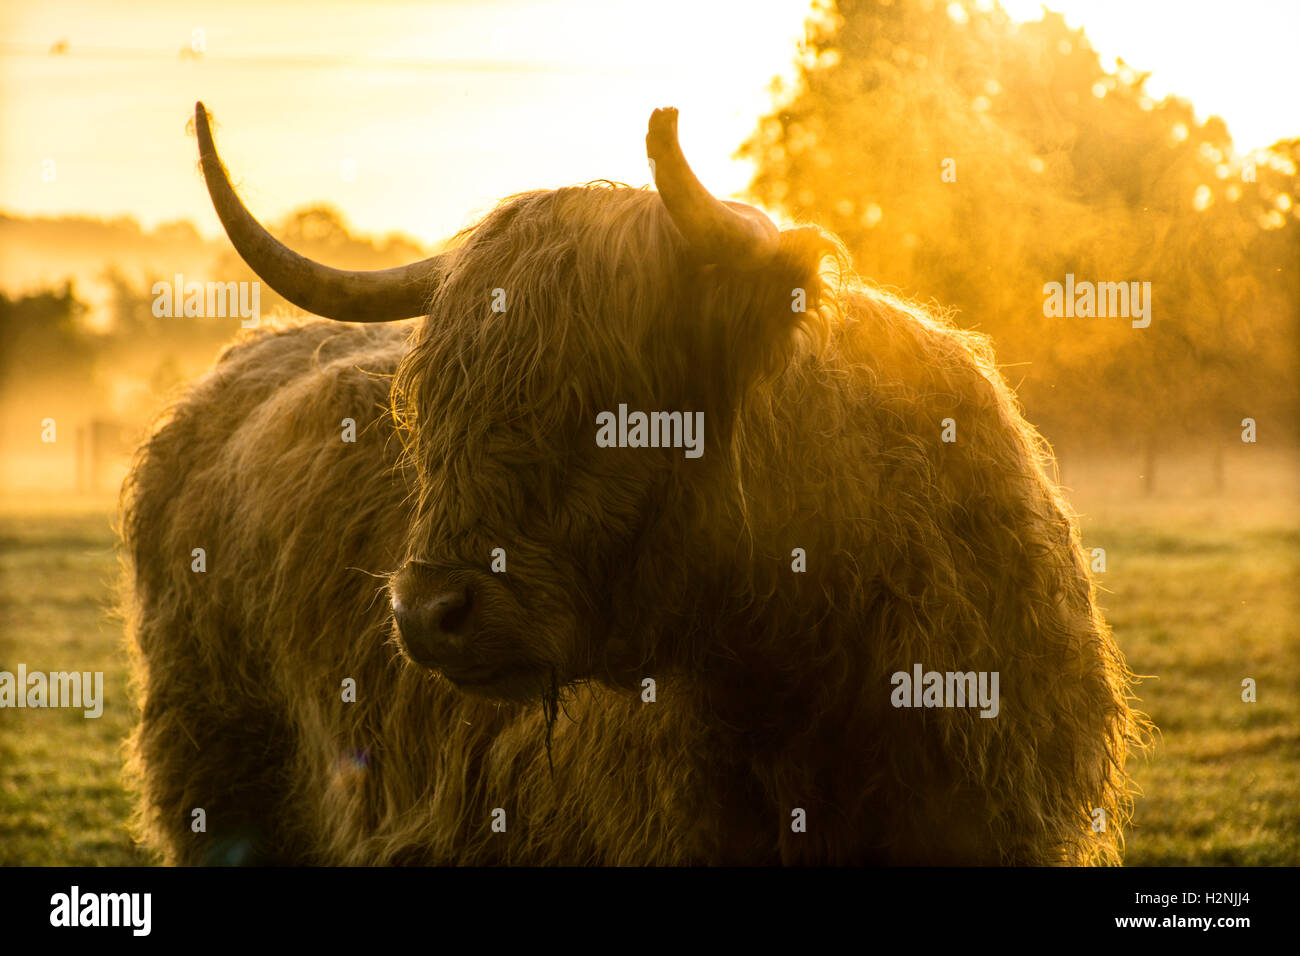 Vache highland au lever du soleil Photo Stock